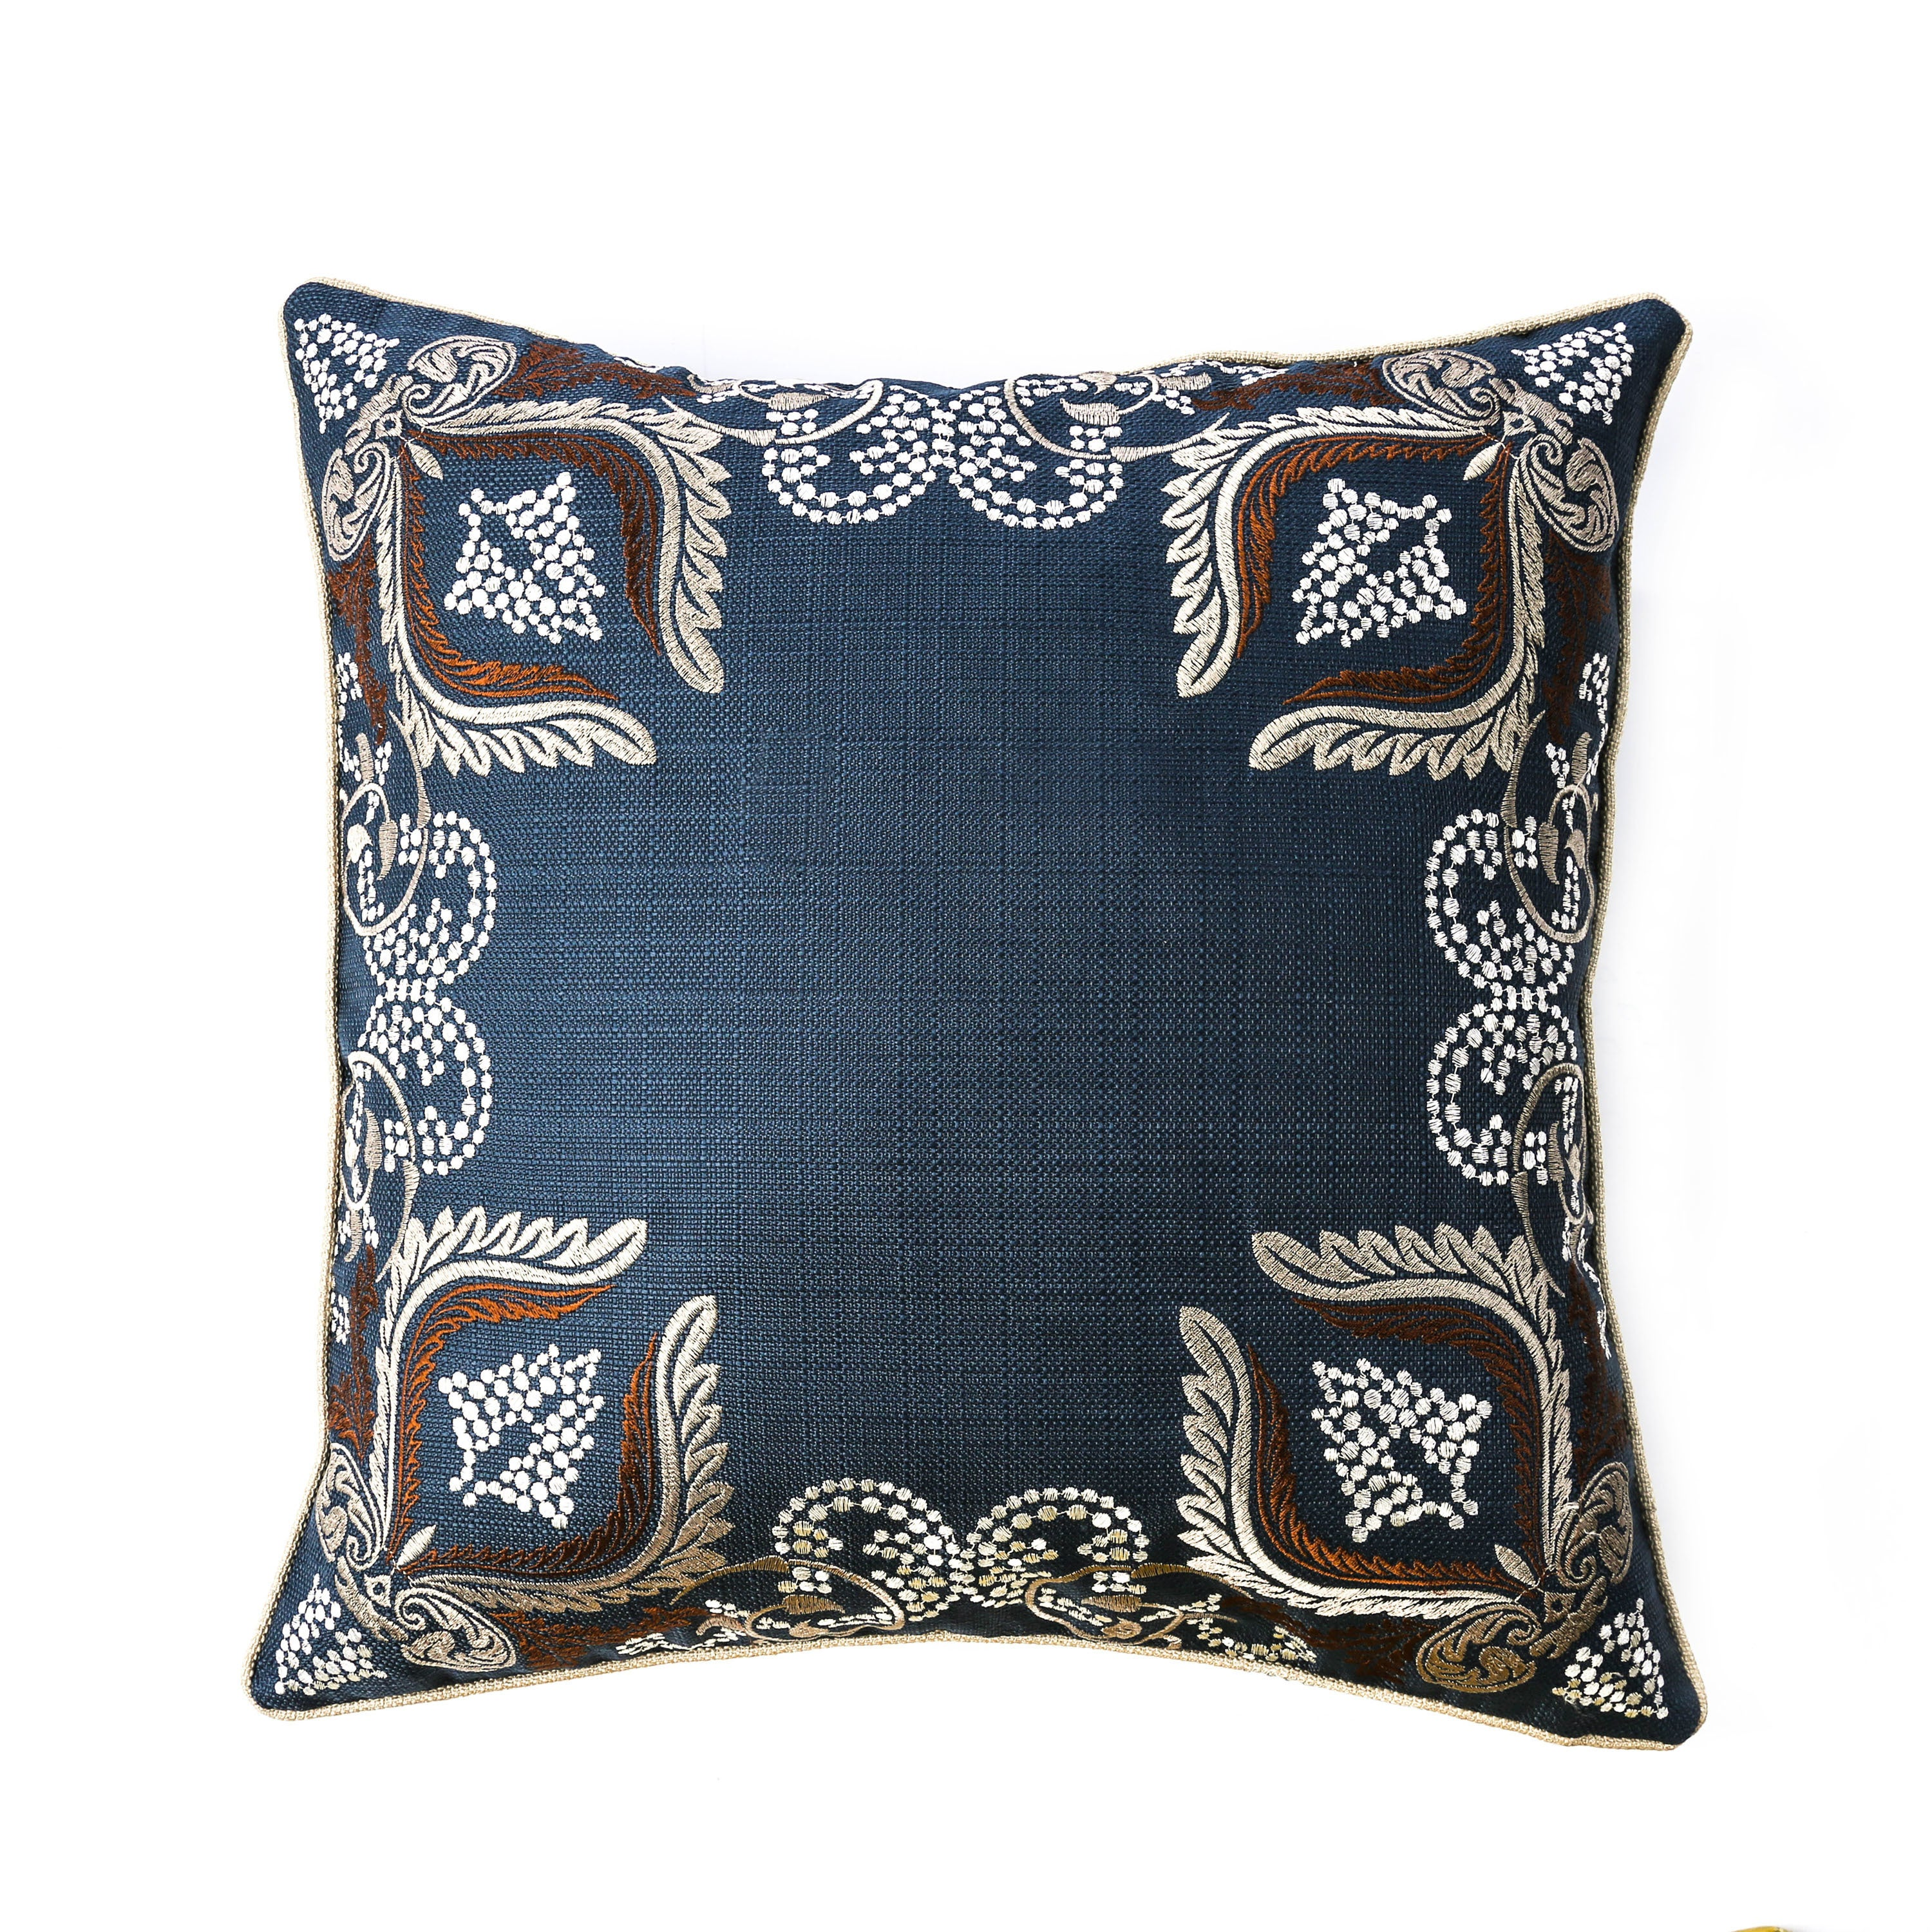 Furniture Of America Mees Contemporary Blue Throw Pillows Set Of 2 Overstock 20295440